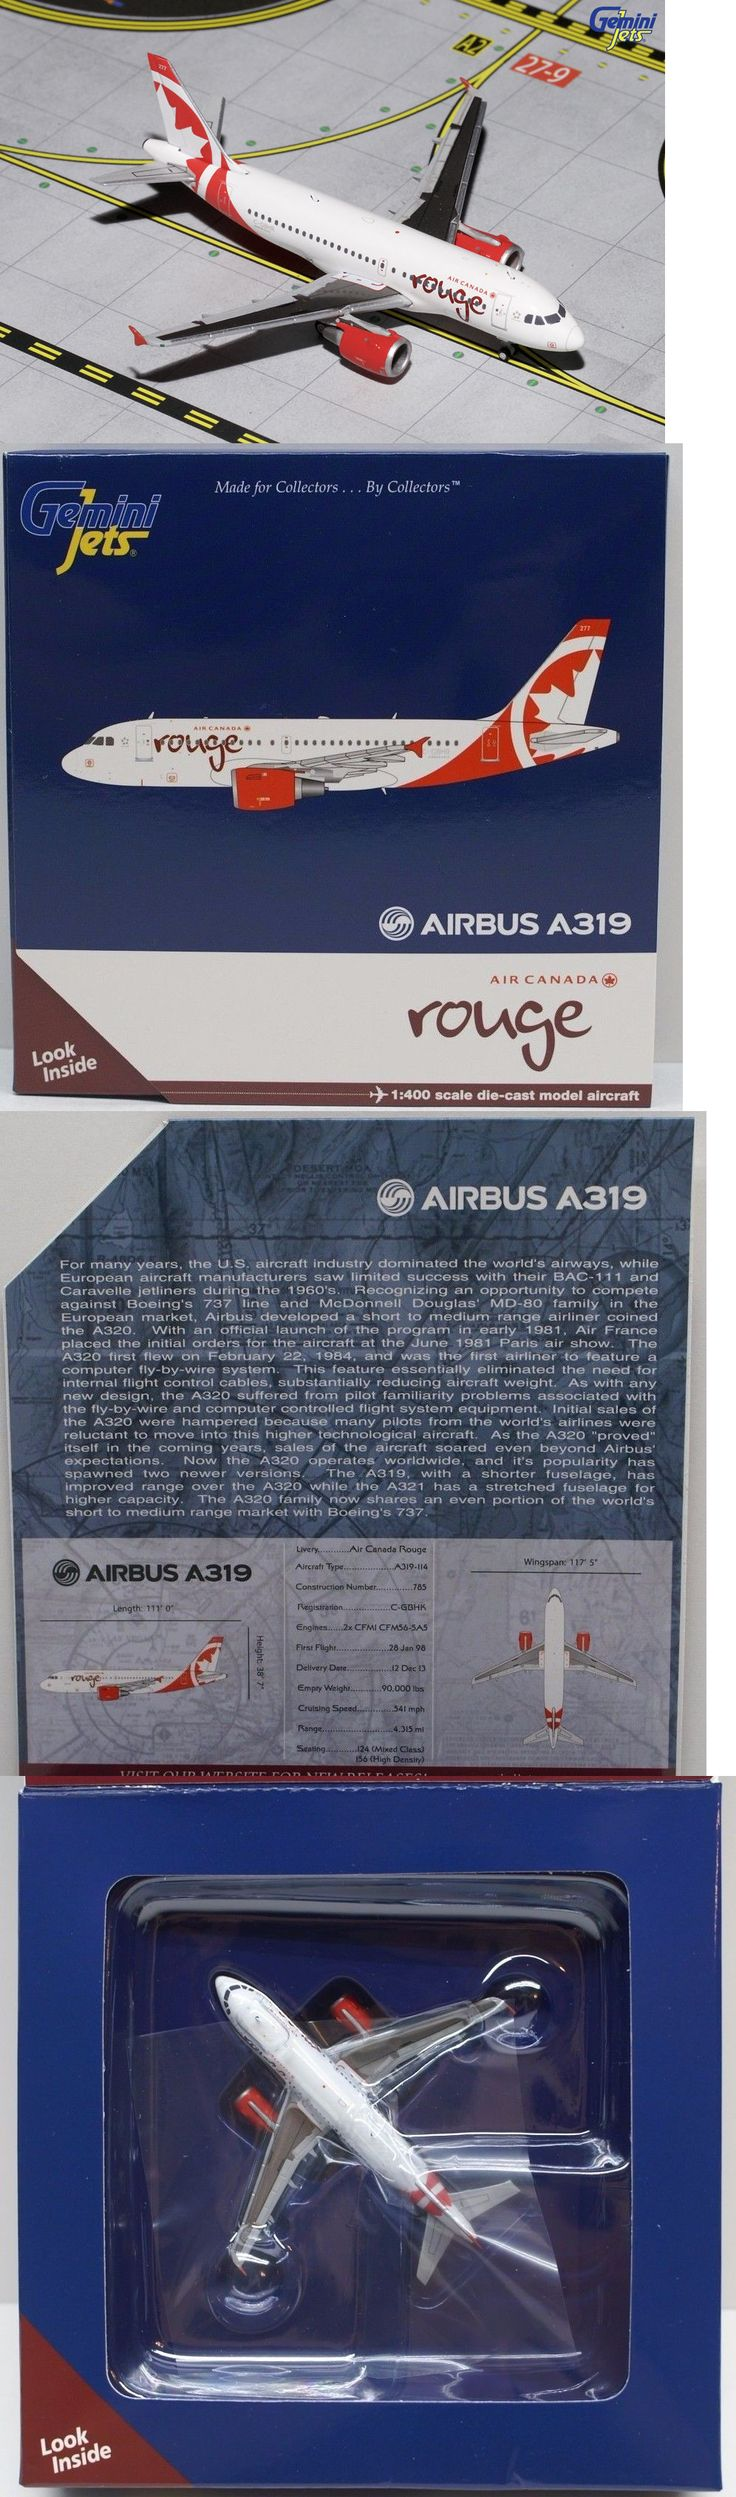 Contemporary Manufacture 19029: Gemini Jets Air Canada Rouge Airbus A319 1 400 Gjaca1414 -> BUY IT NOW ONLY: $31.99 on eBay!